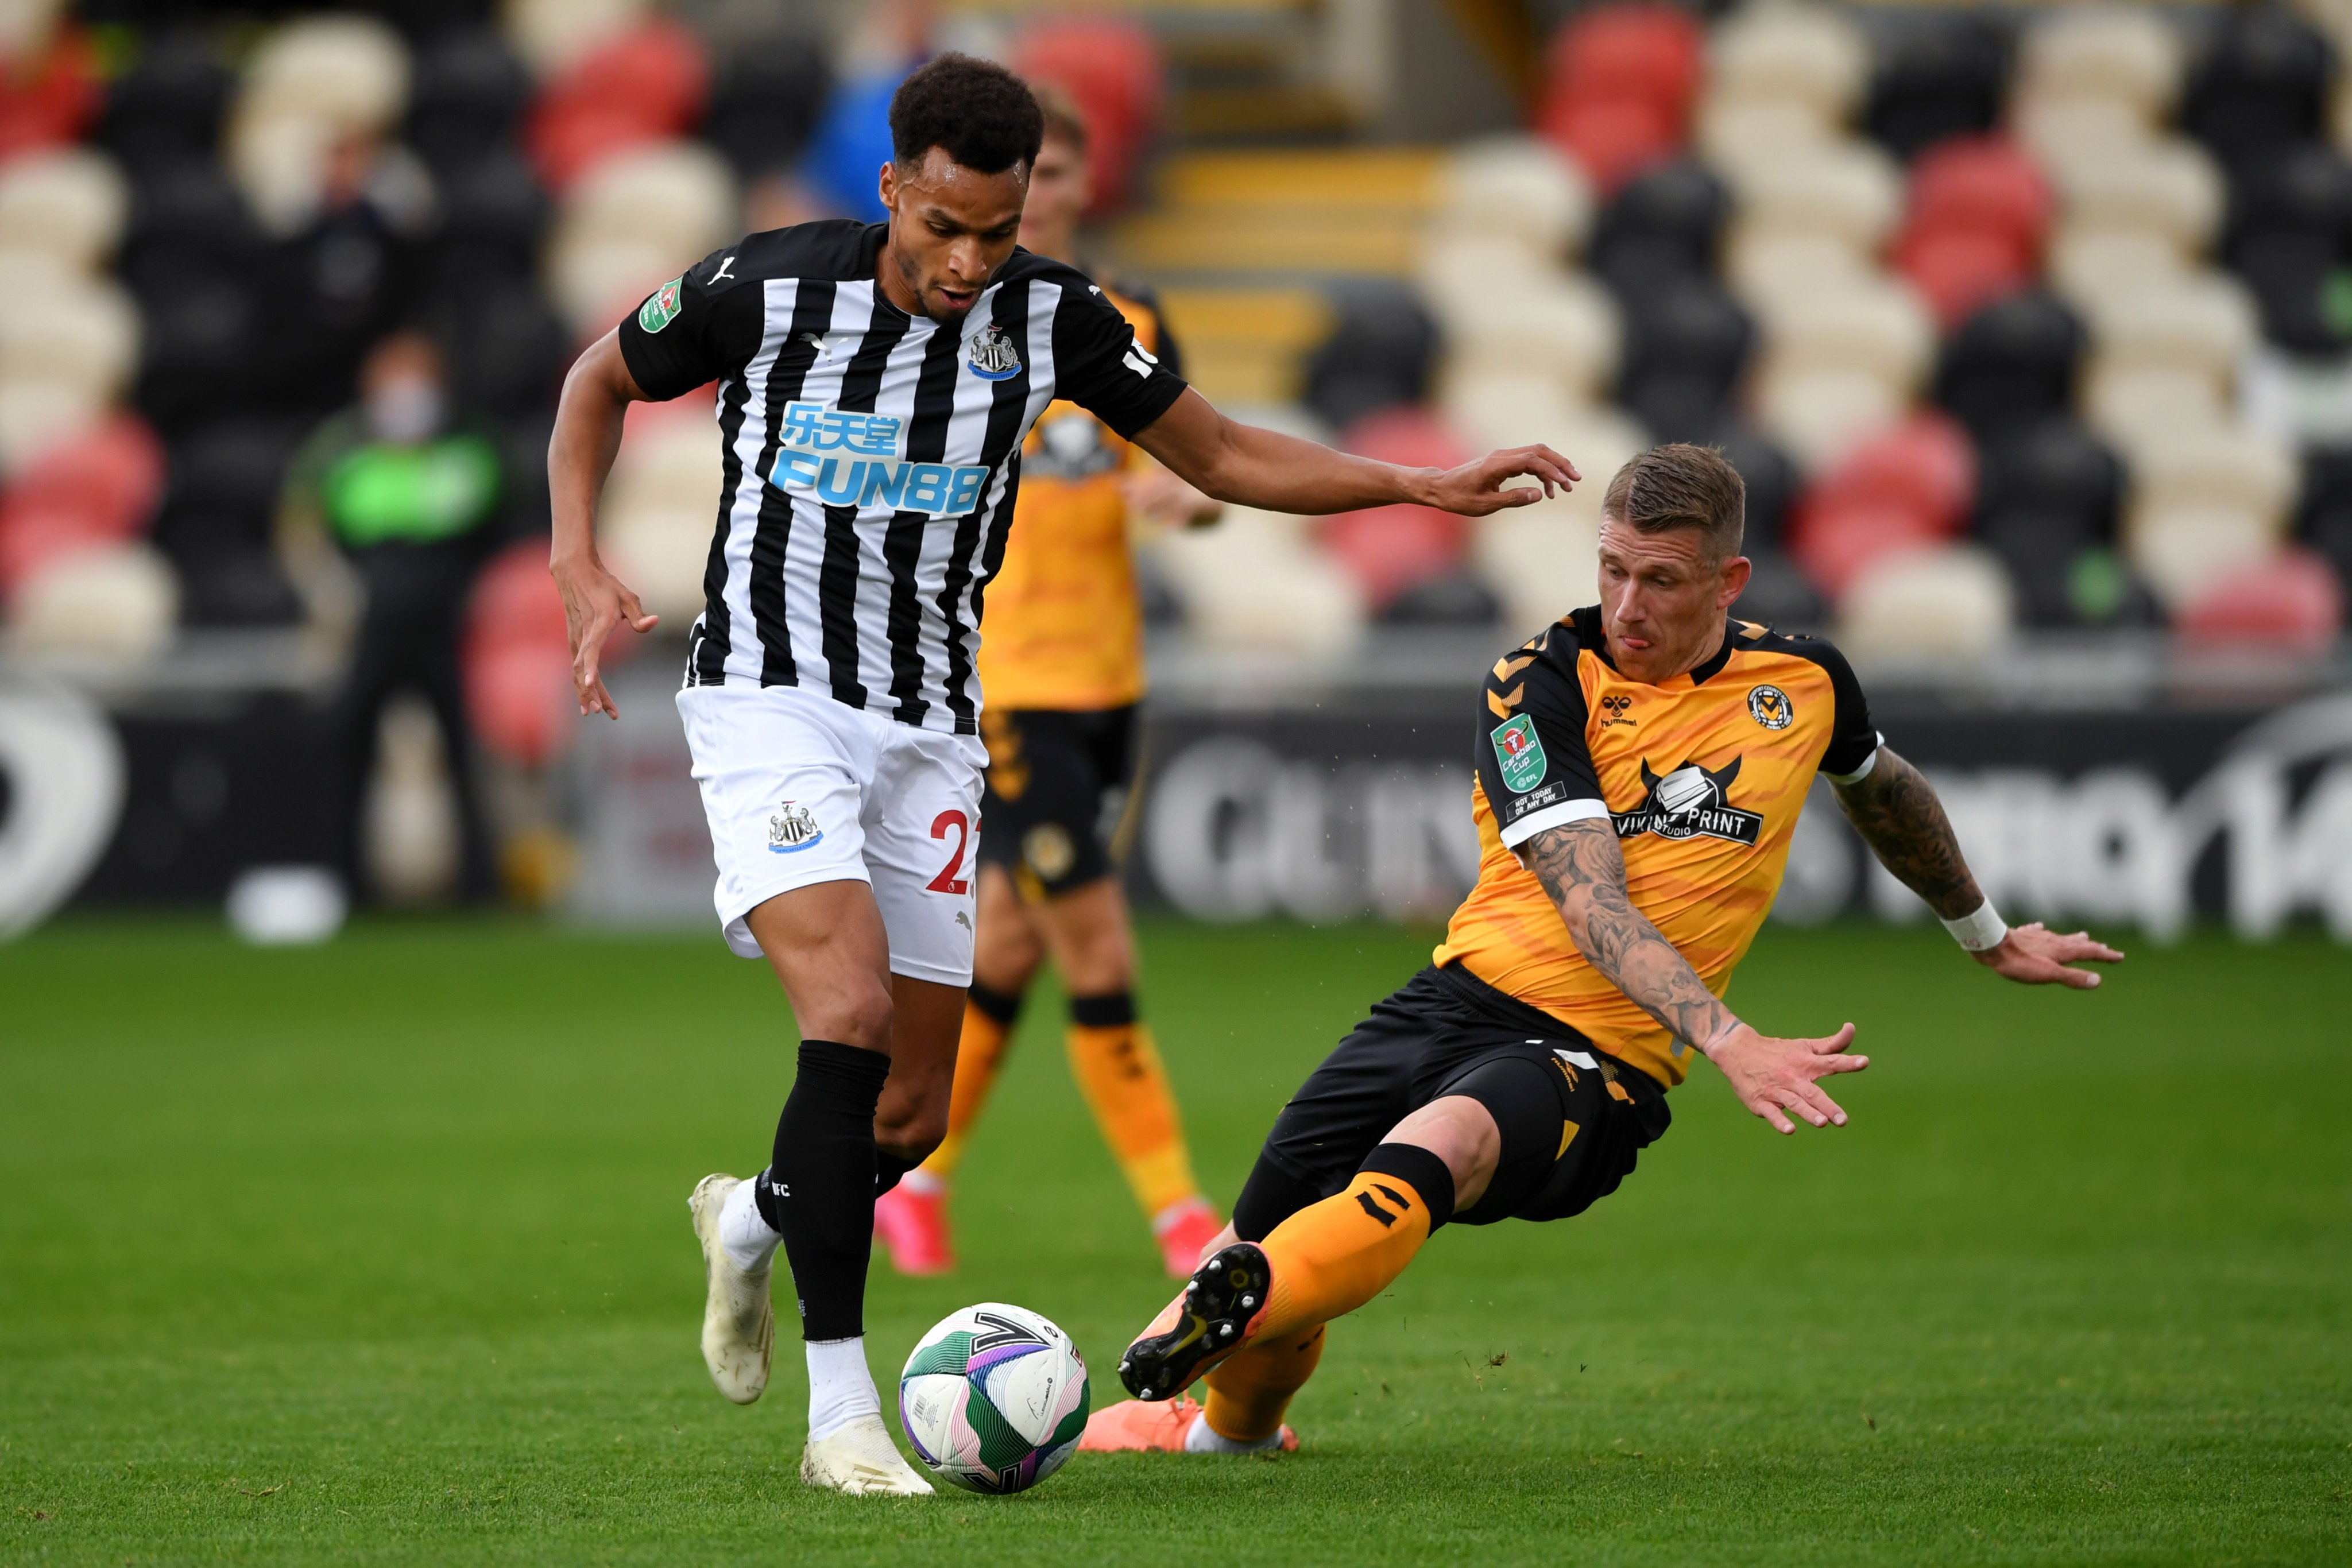 Newcastle star Murphy dribbles with ball